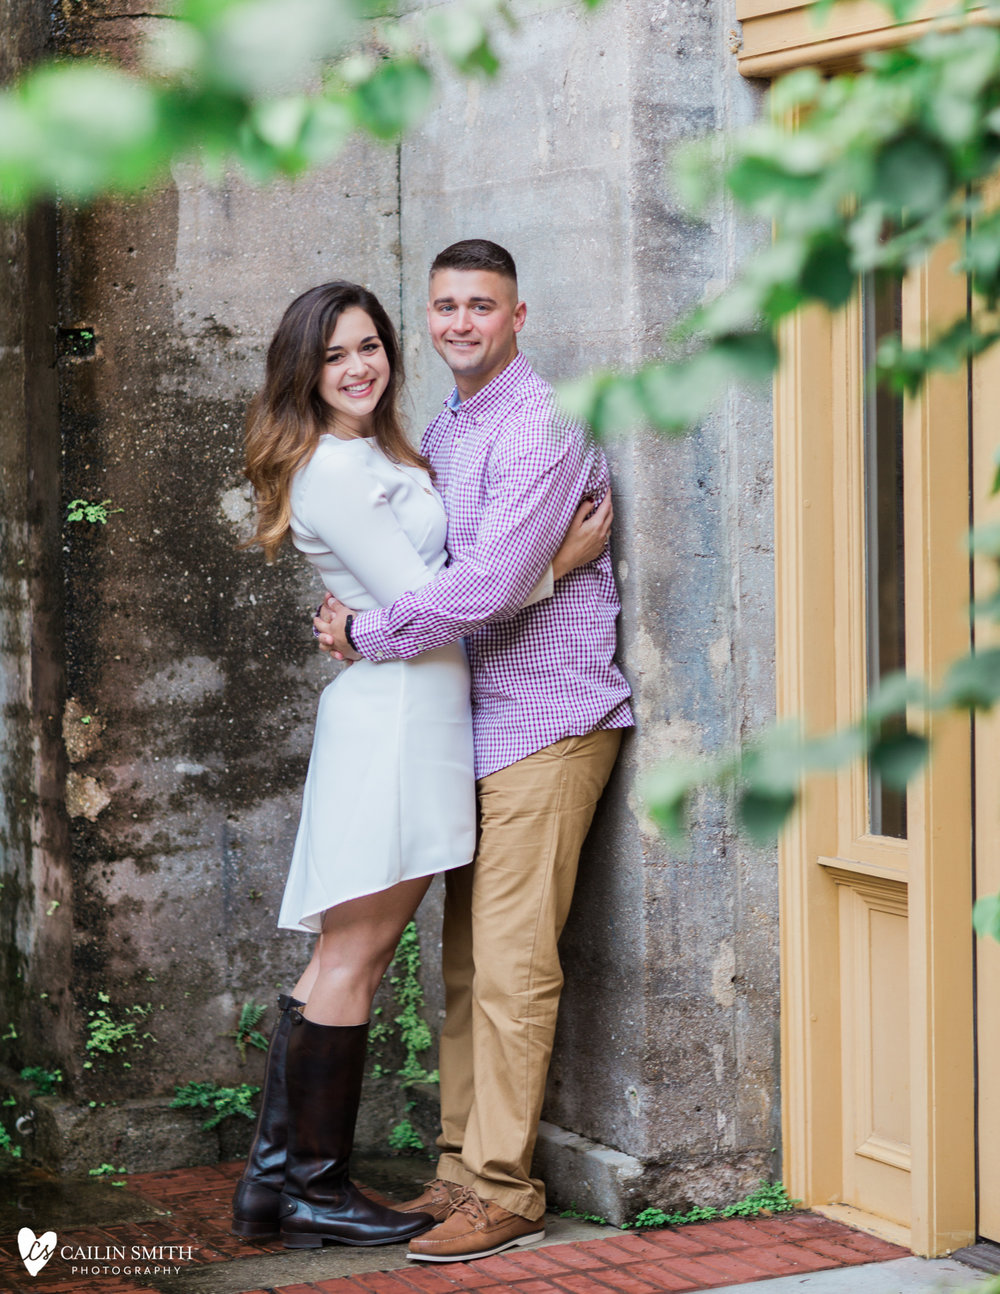 Meaghan_Chase_St_Augustine_Nights_of_Lights_Engagement_Photography_06.jpg